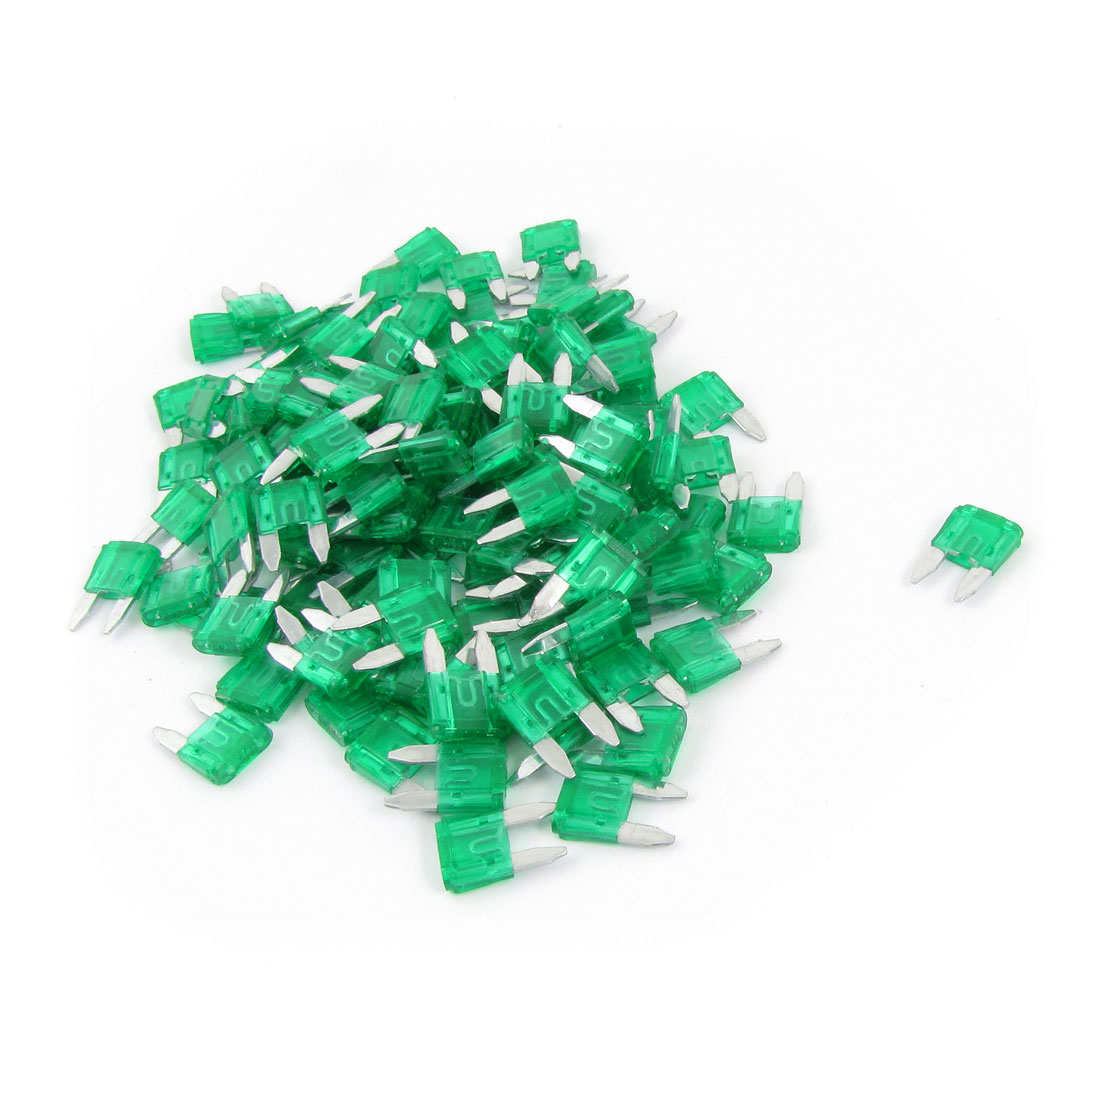 120 Pcs 30A Mini Blade Fuses Green for Vehicle Car Auto Stereo